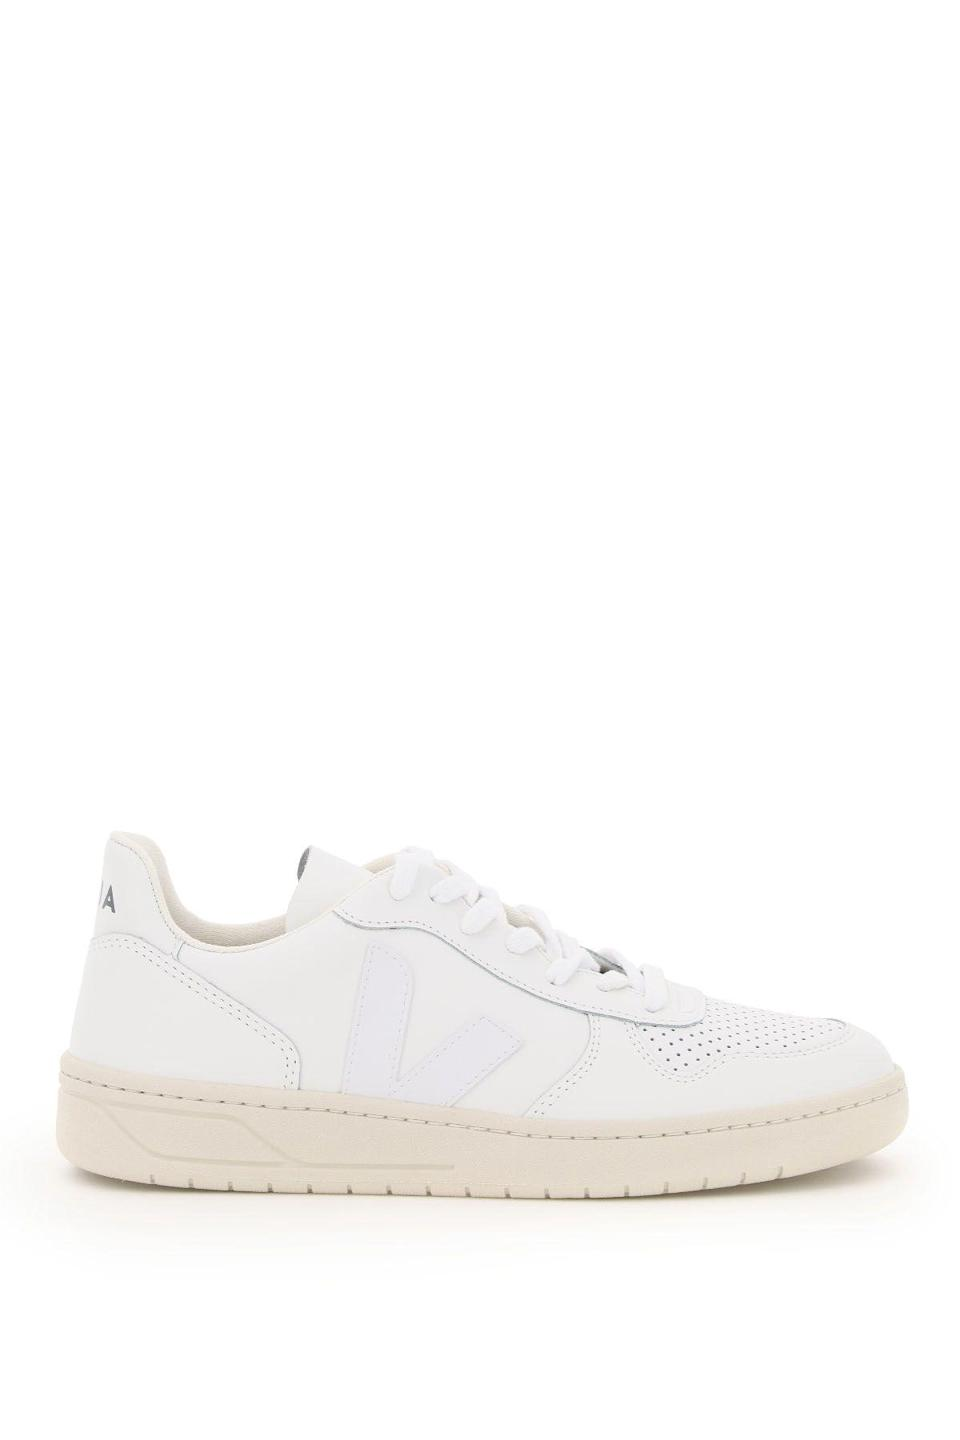 """<p><strong>Veja</strong></p><p>coltortiboutique.com</p><p><strong>$124.00</strong></p><p><a href=""""https://go.redirectingat.com?id=74968X1596630&url=https%3A%2F%2Fwww.coltortiboutique.com%2Fen_us%2Fsneakers-veja-212773nsn000008-exwht.html&sref=https%3A%2F%2Fwww.harpersbazaar.com%2Ffashion%2Fg34974716%2Flast-minute-gifts-on-sale%2F"""" rel=""""nofollow noopener"""" target=""""_blank"""" data-ylk=""""slk:Shop Now"""" class=""""link rapid-noclick-resp"""">Shop Now</a></p><p><strong><del>$150</del> $124 (Save 15%)</strong></p><p>Veja's V-10 sneakers have been designed to celebrate the French label's 10-year anniversary. Each pair is crafted using considered materials, including responsibly sourced leather, organic cotton, and wild rubber harvested from the Amazon rainforest. </p>"""